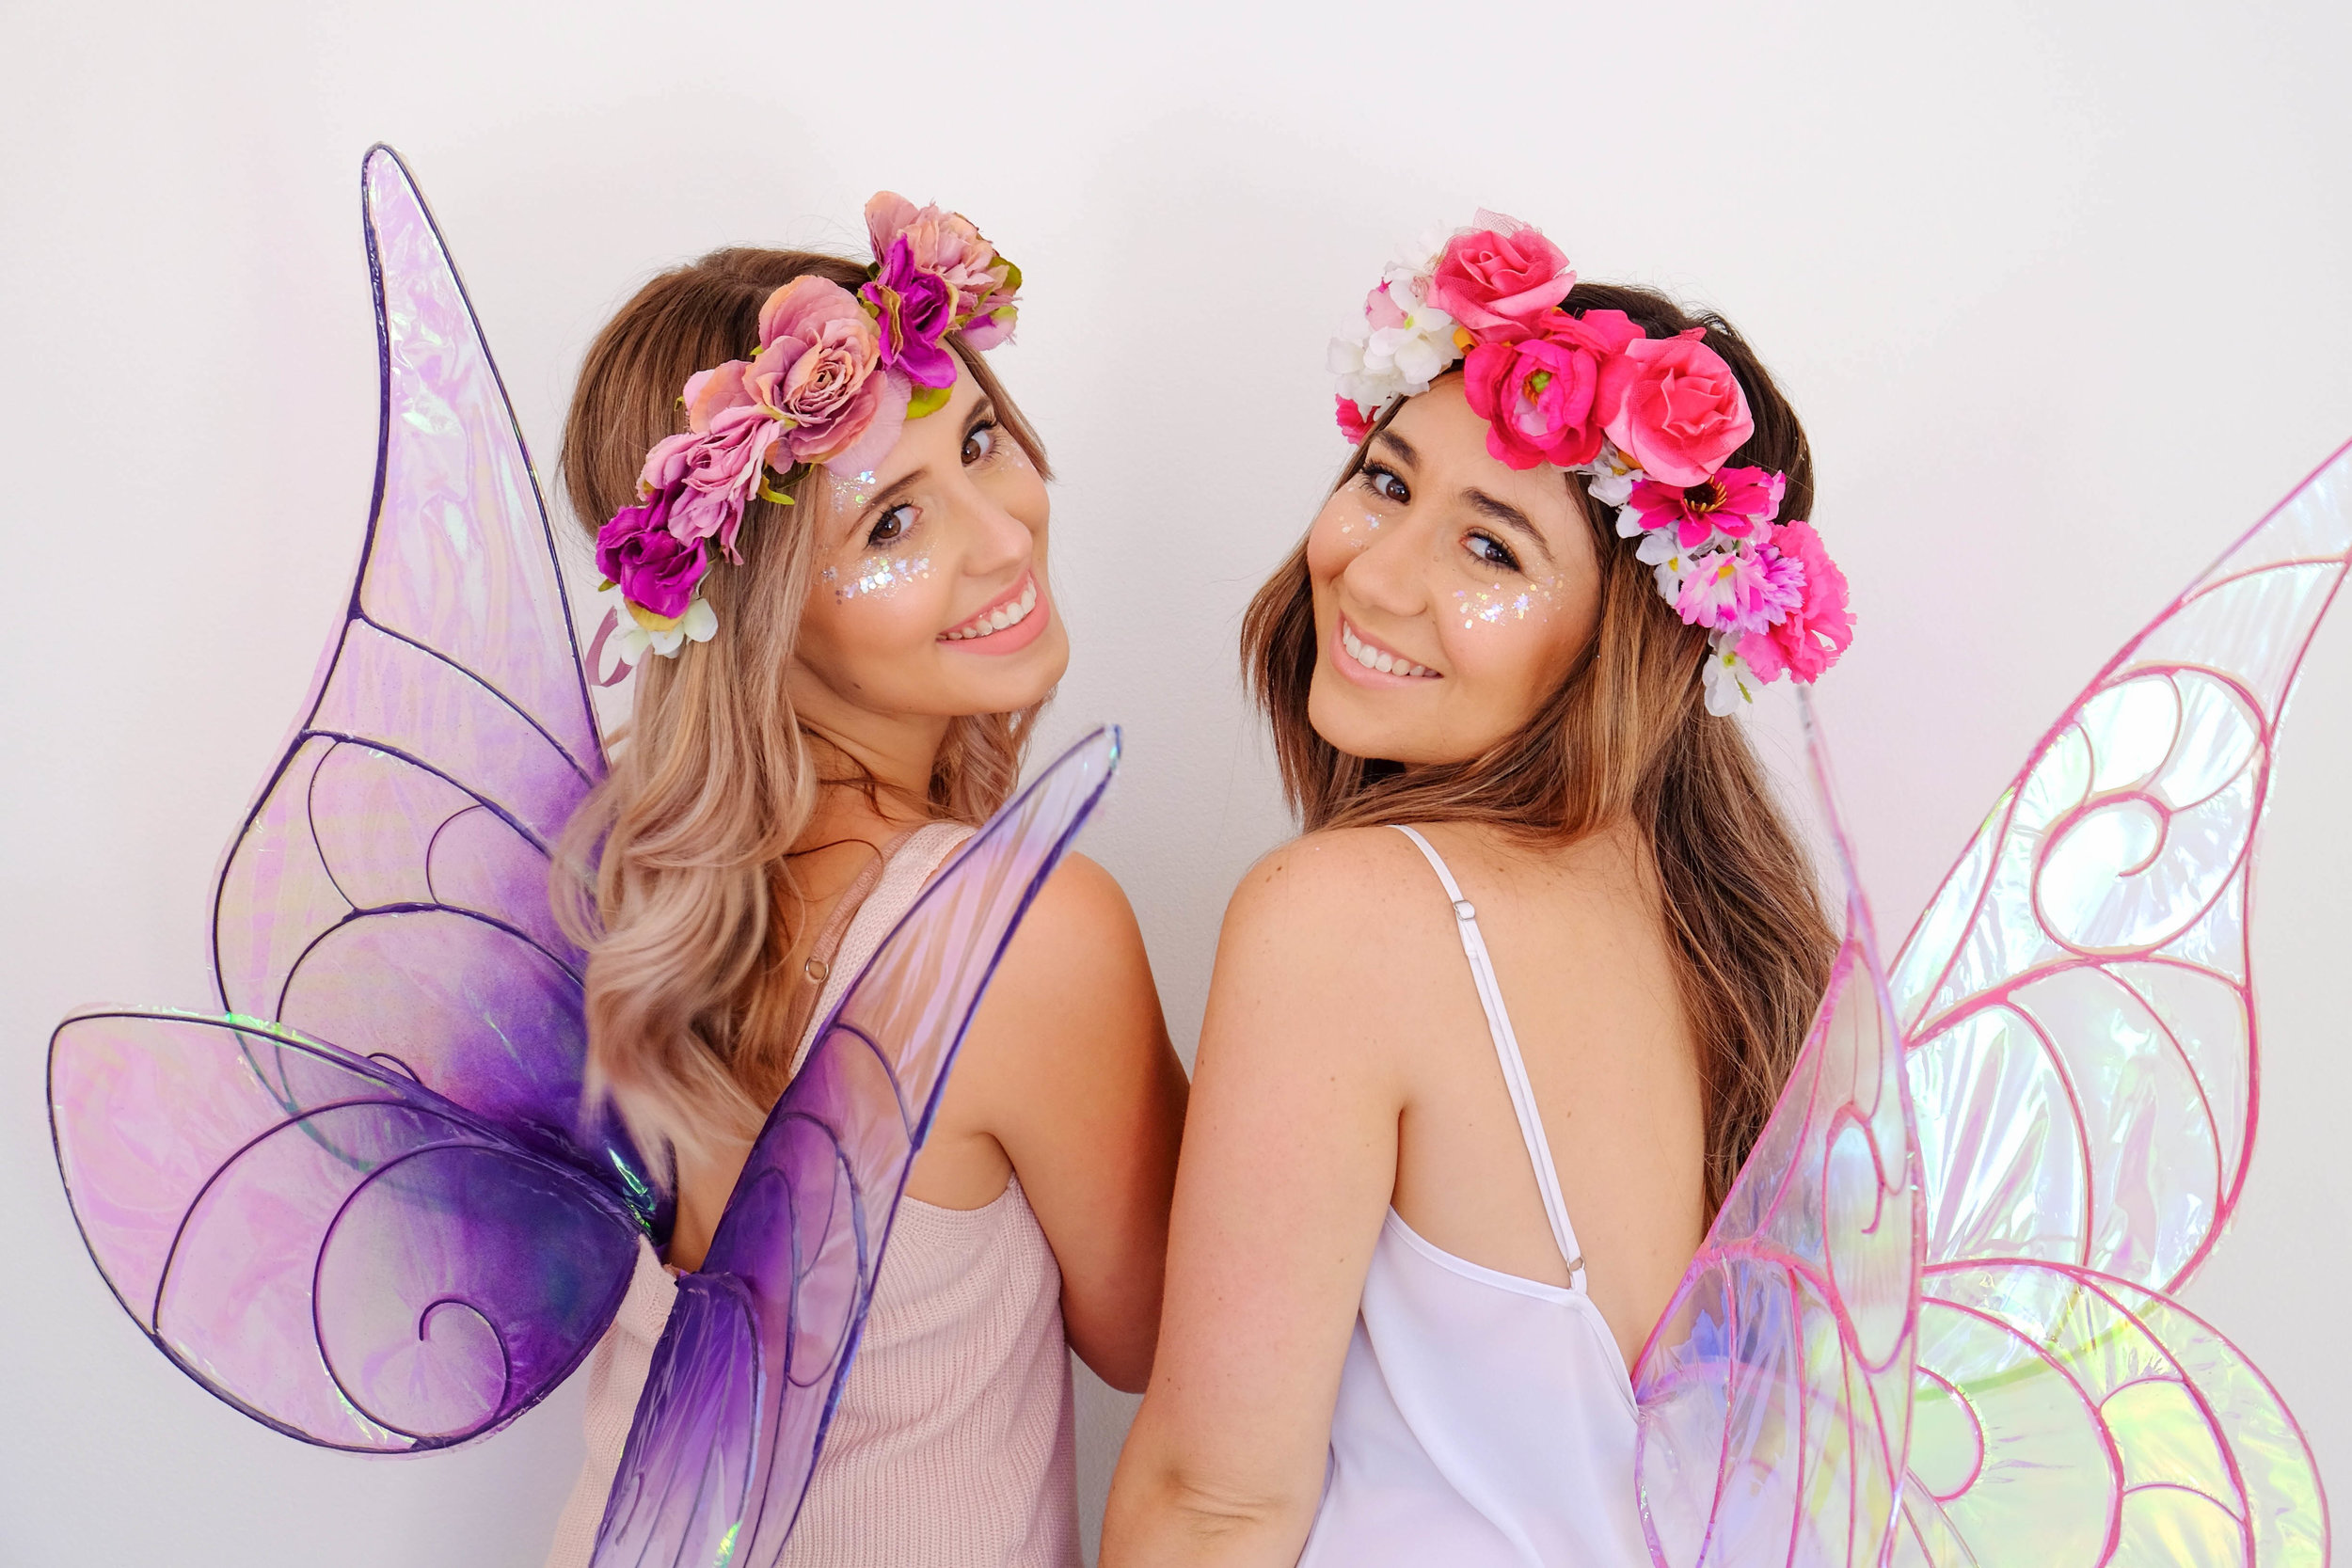 Q&A with Shannan & Tayla Stedman - The Stedman sisters talk about finding magic in the everyday, being inspired by children and the importance of surrounding yourself with things that spark your creativity!